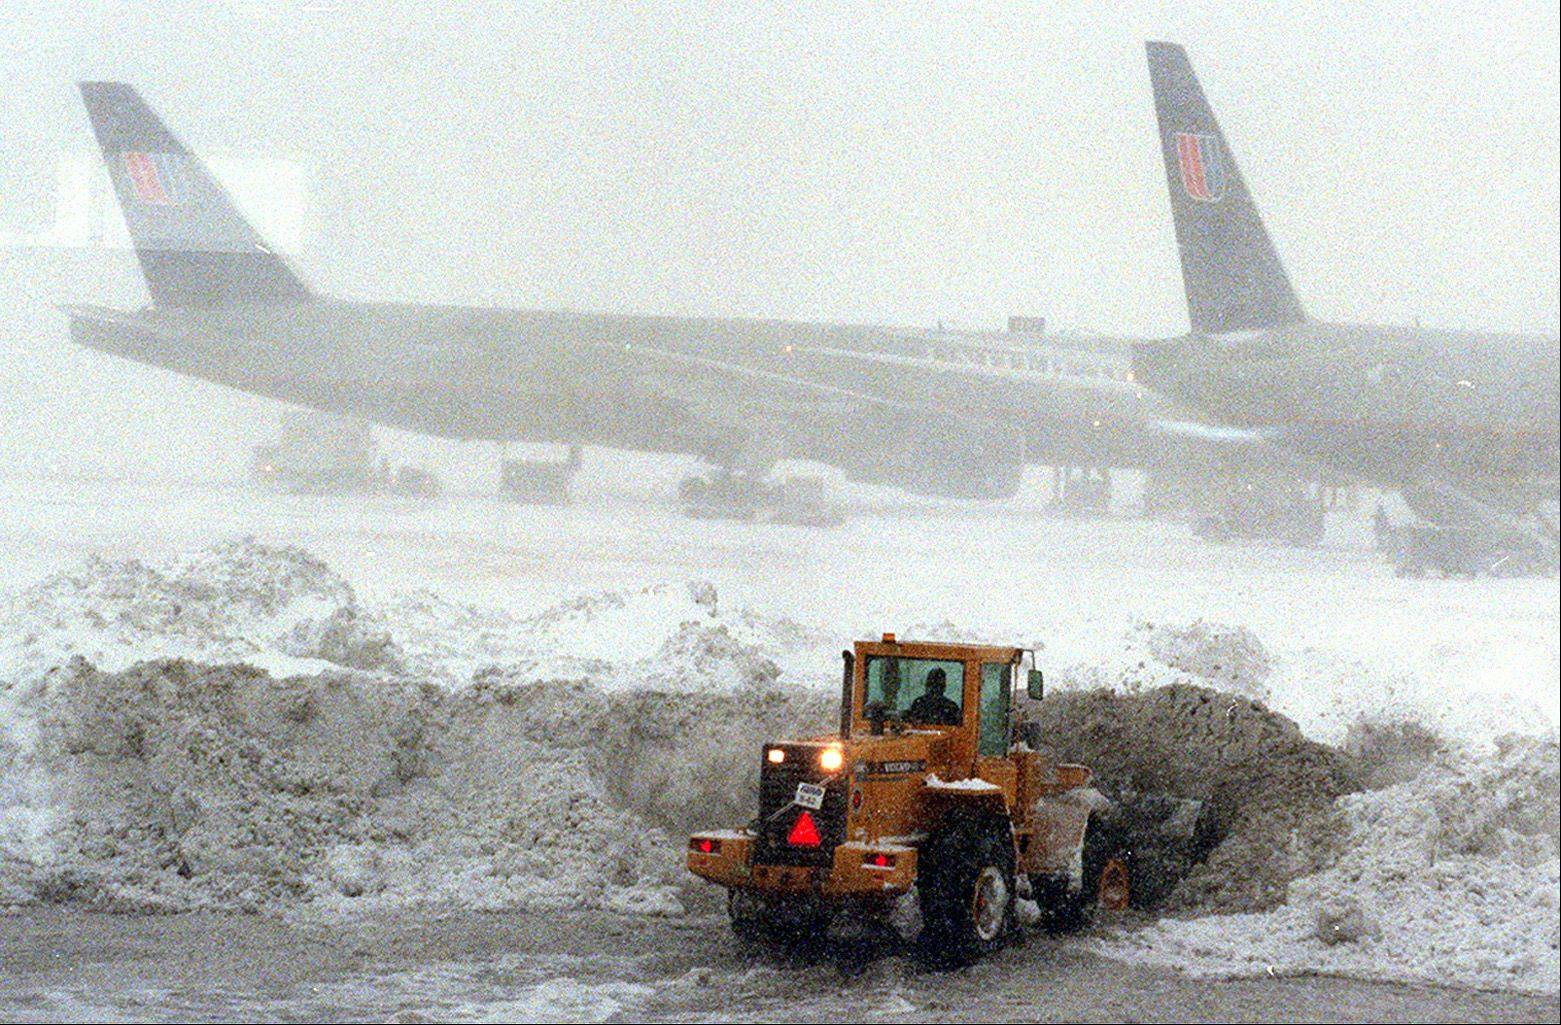 Crews try to clear the runways at O'Hare International Airport during the snowstorm of 1999.